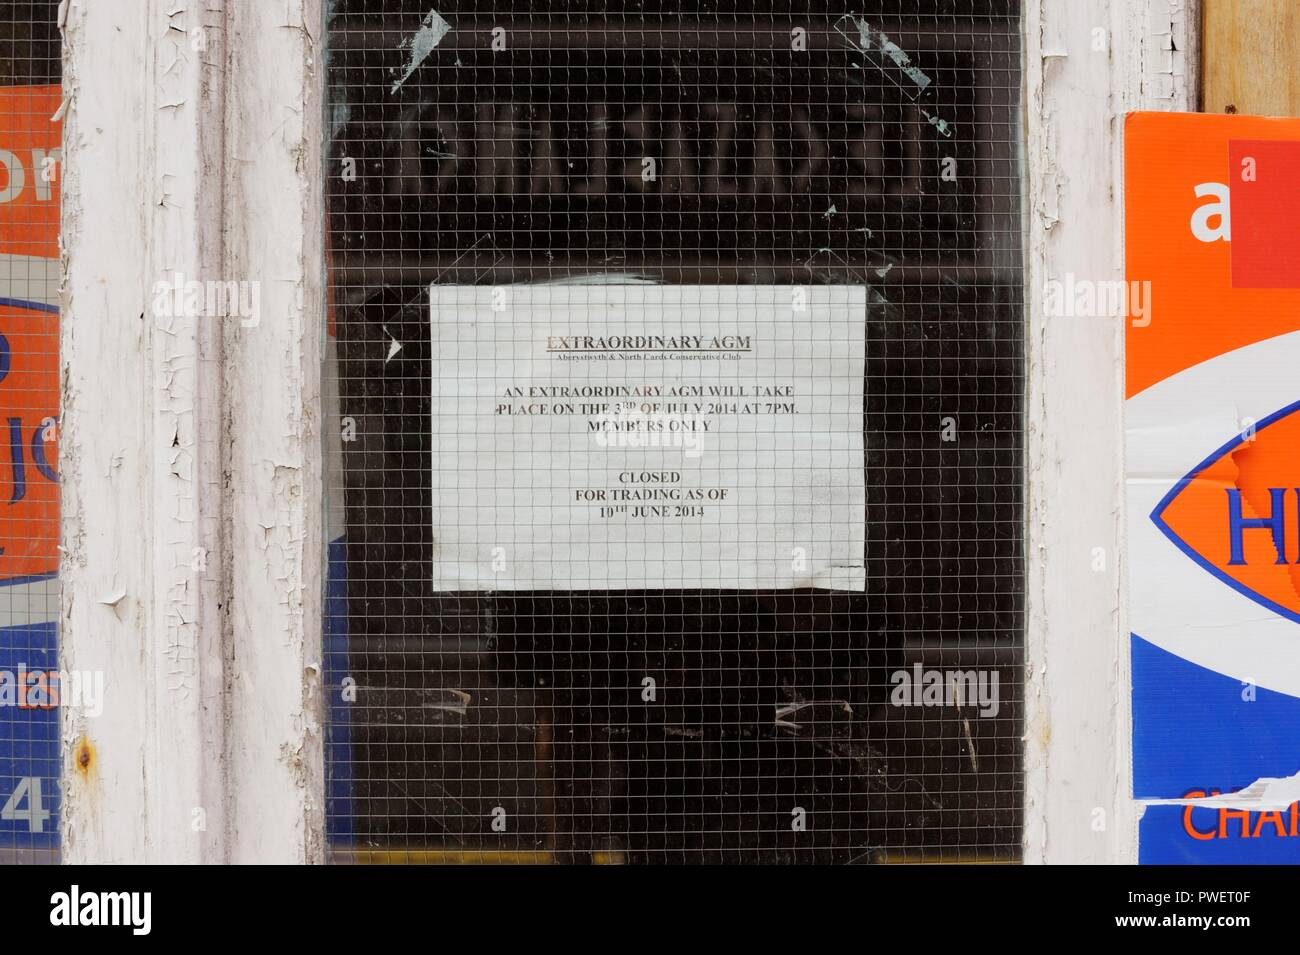 Notice of an Extraordinary AGM following the closure of Aberystwyth Conservative Club, Wales, UK. - Stock Image